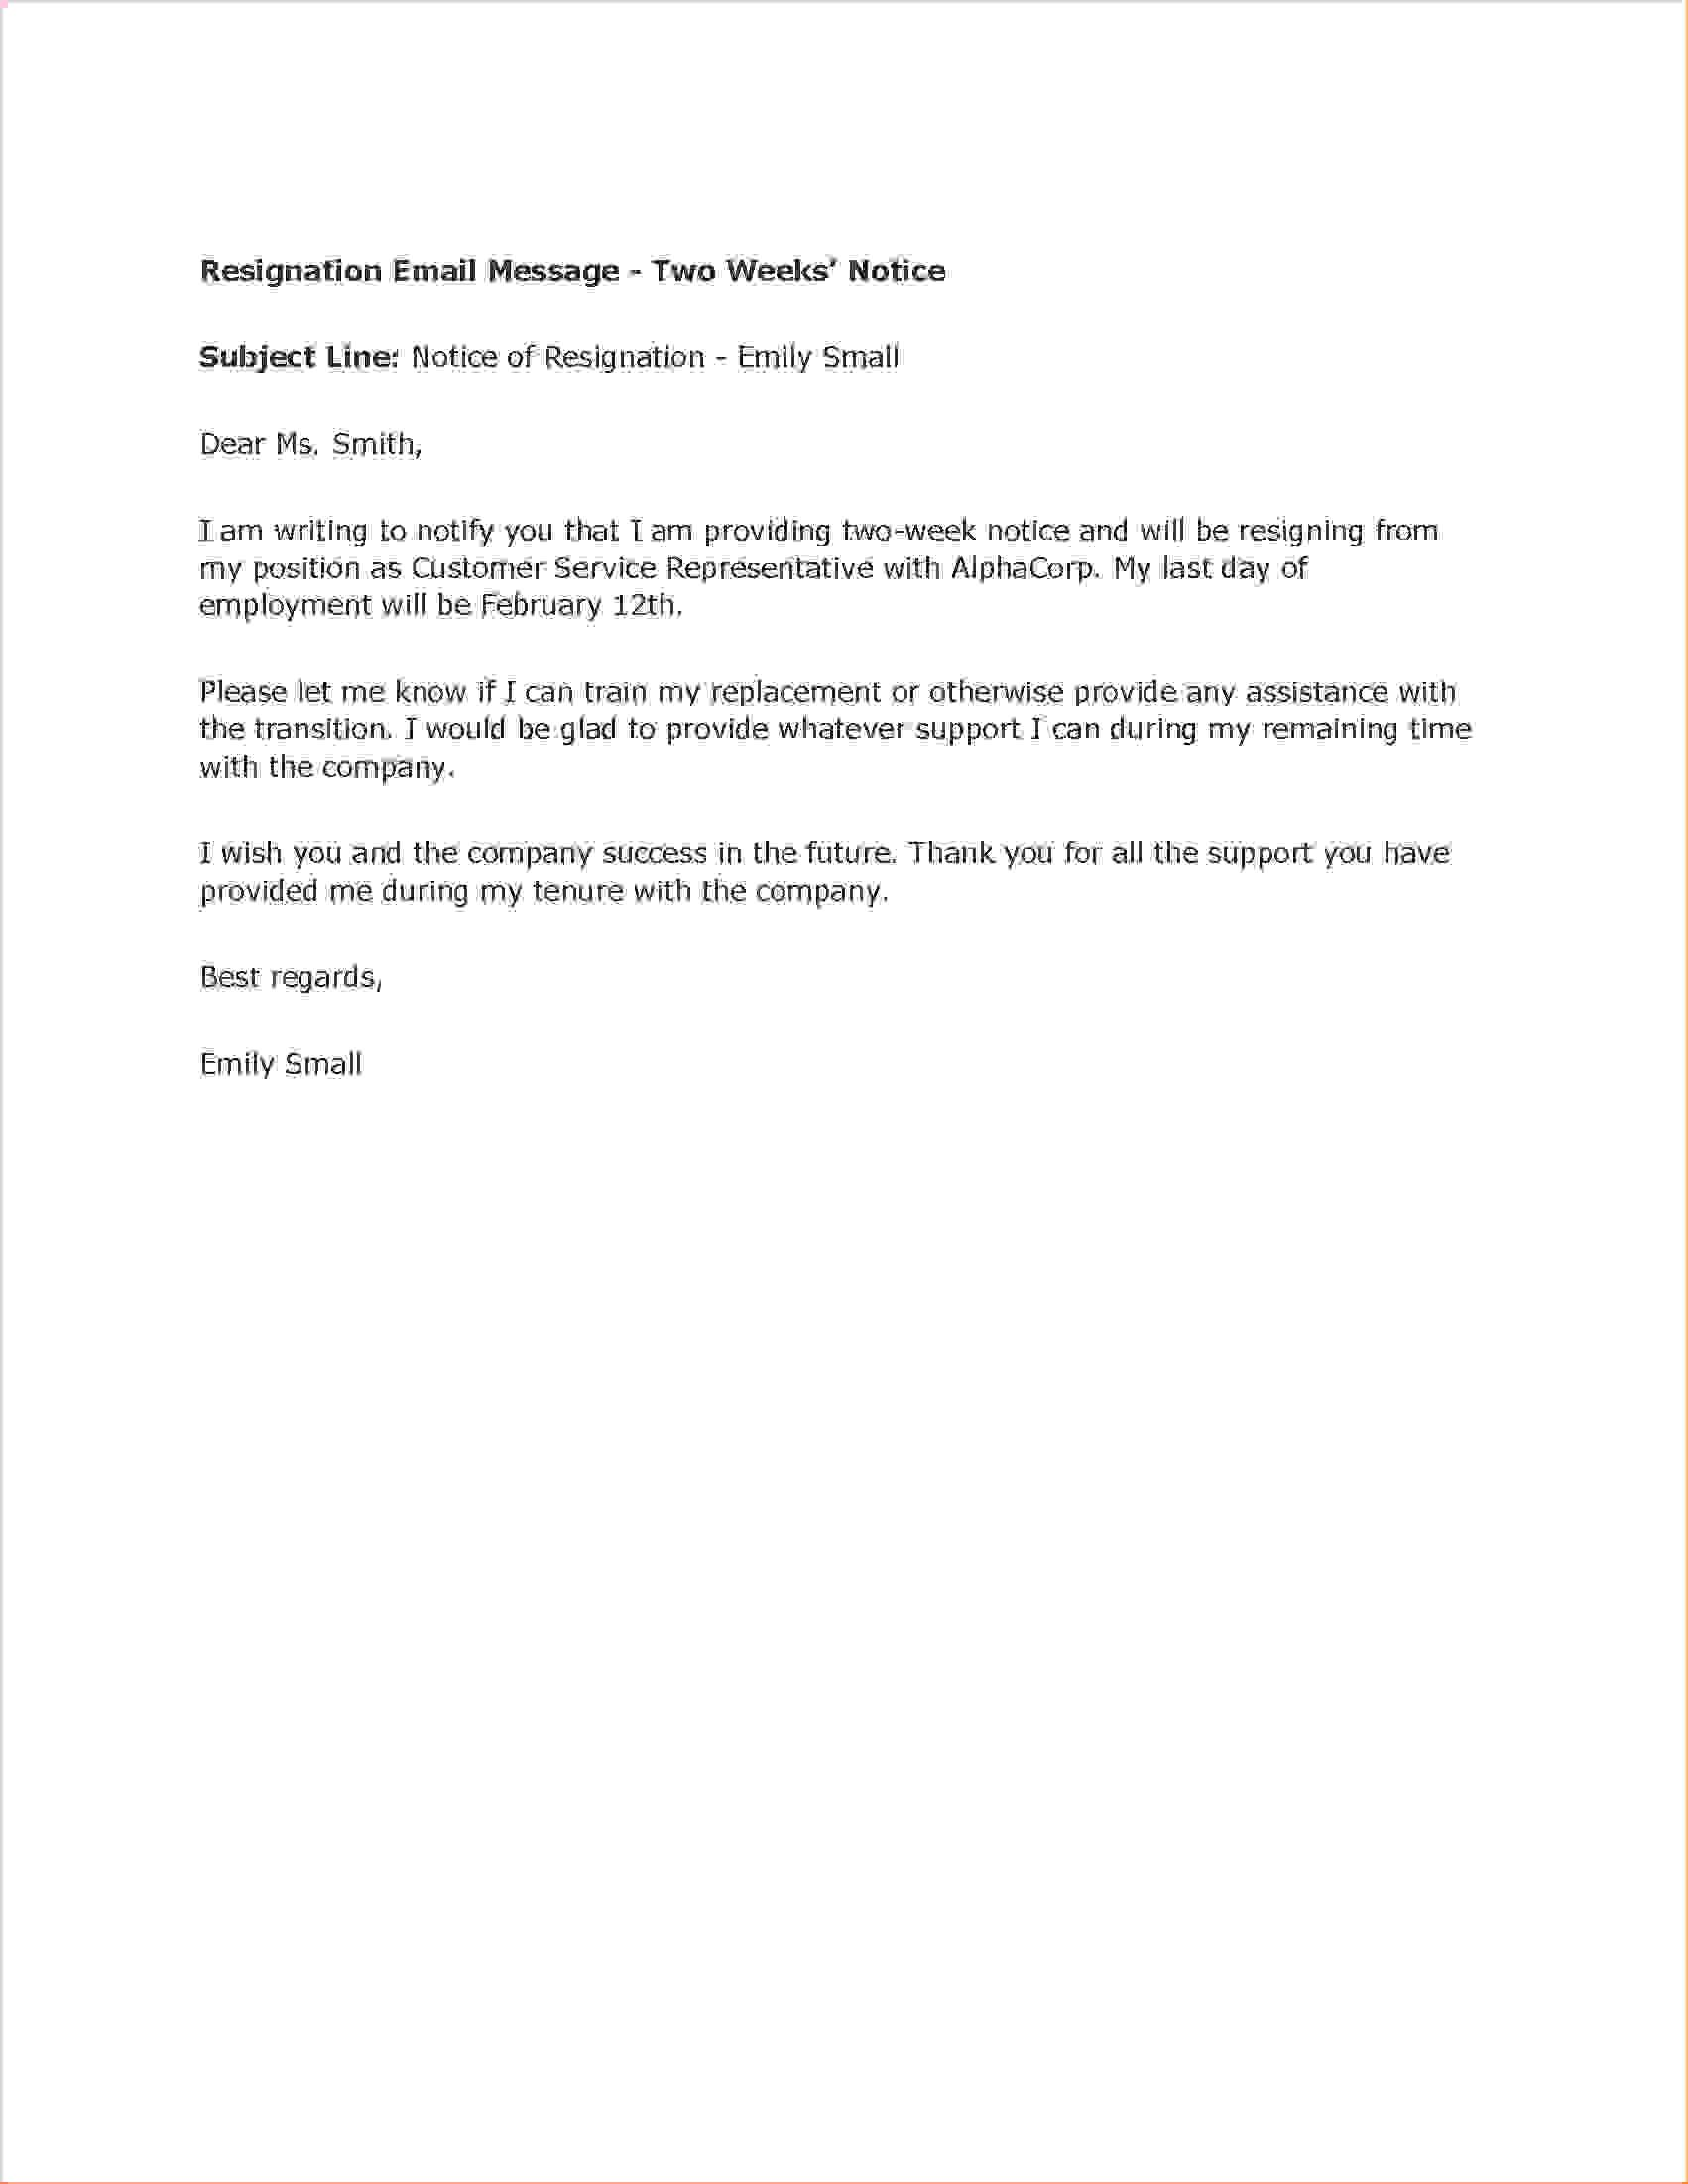 Heartfelt Resignation Letter 3 Two Weeks Notice Letter Templatereport Template  News To Go 2 .